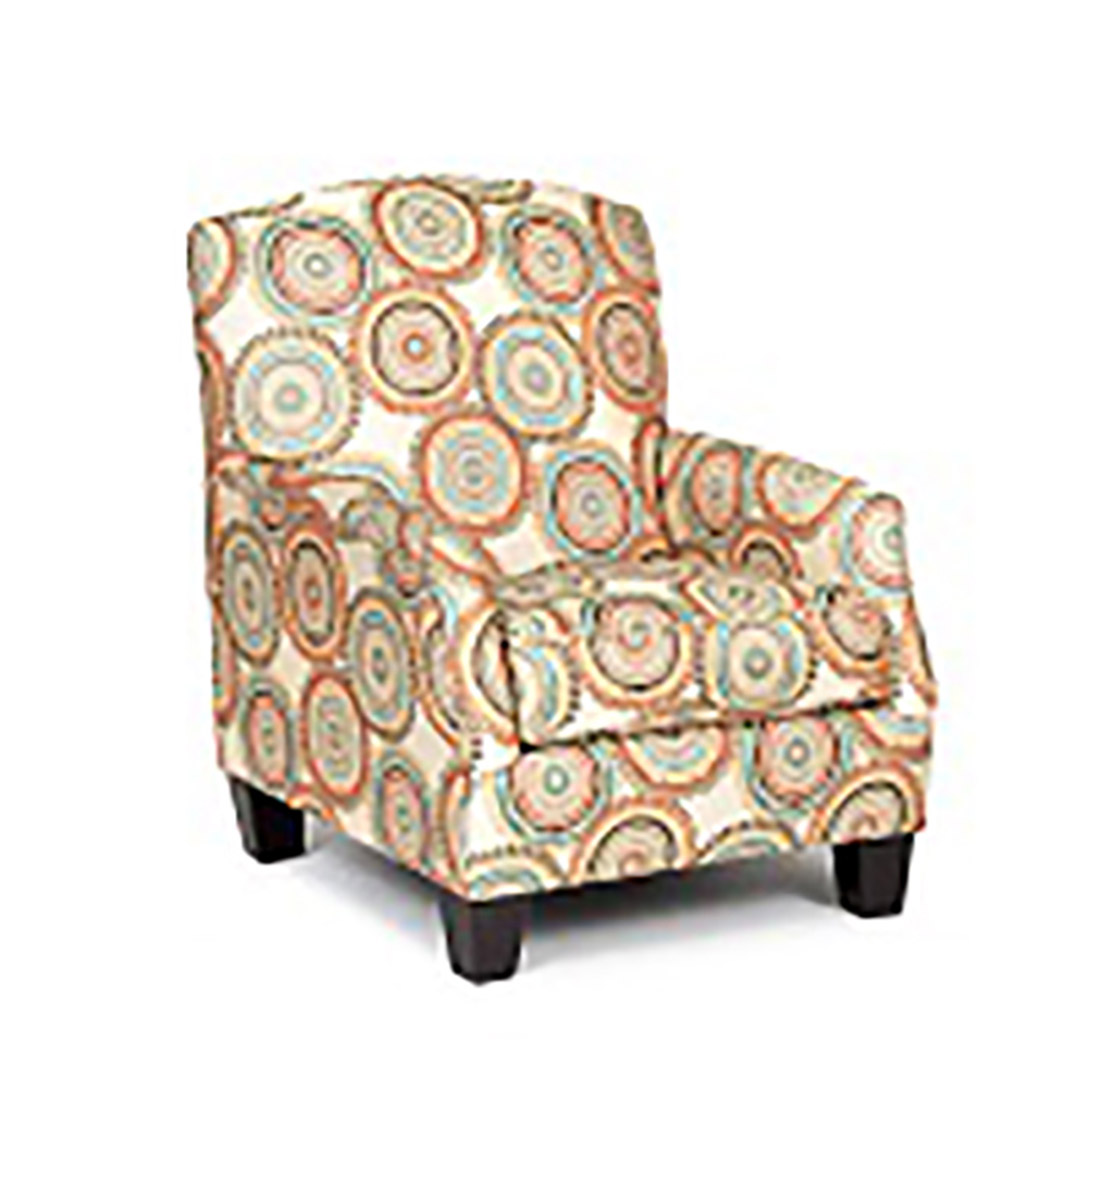 Chelsea Home Gill Chair - Multicolor